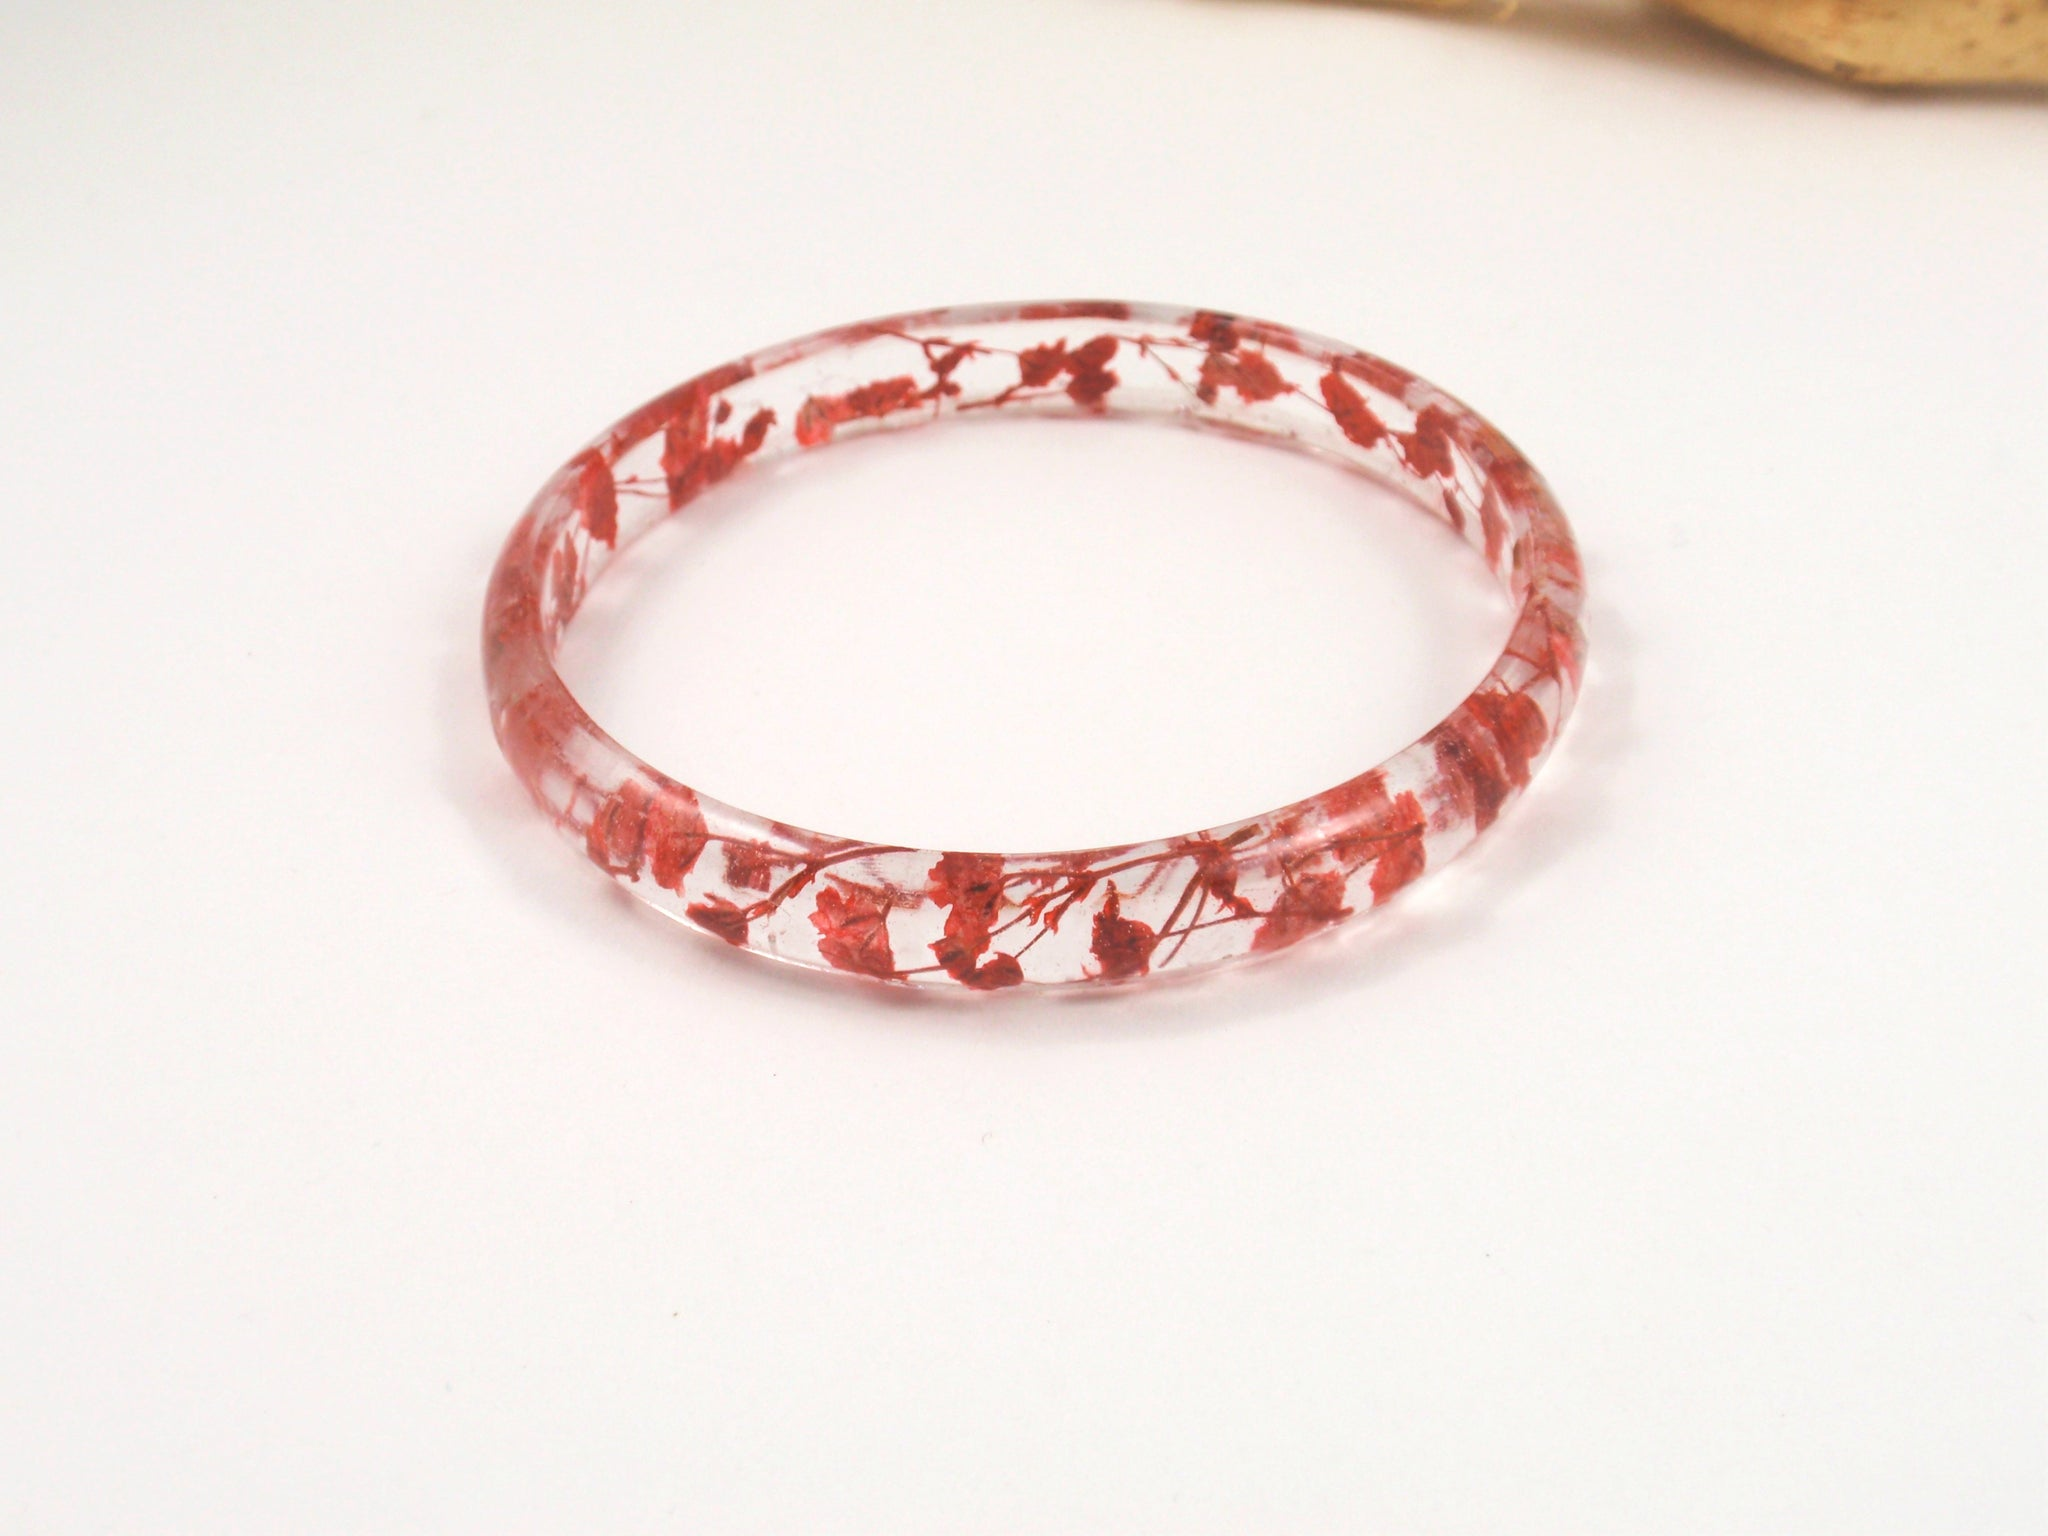 Red pressed flower resin bangle Bracelet, Botanical bracelet